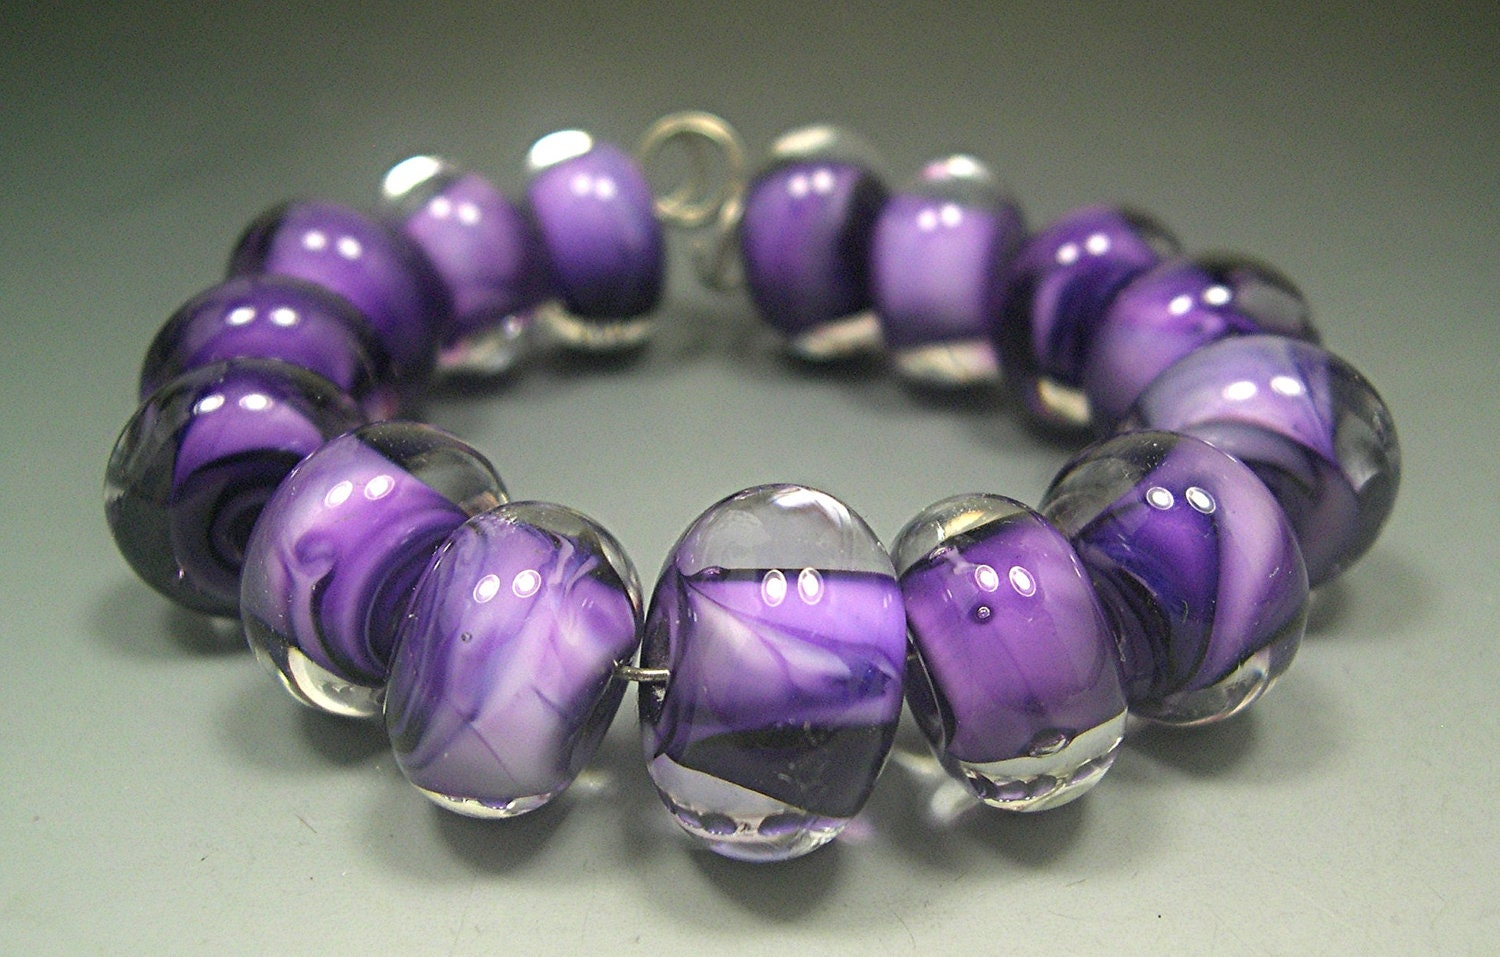 HANDMADE LAMPWORK GLASS Bead Spacer Set 15 beads Donna Millard  ice winter lamp work purple